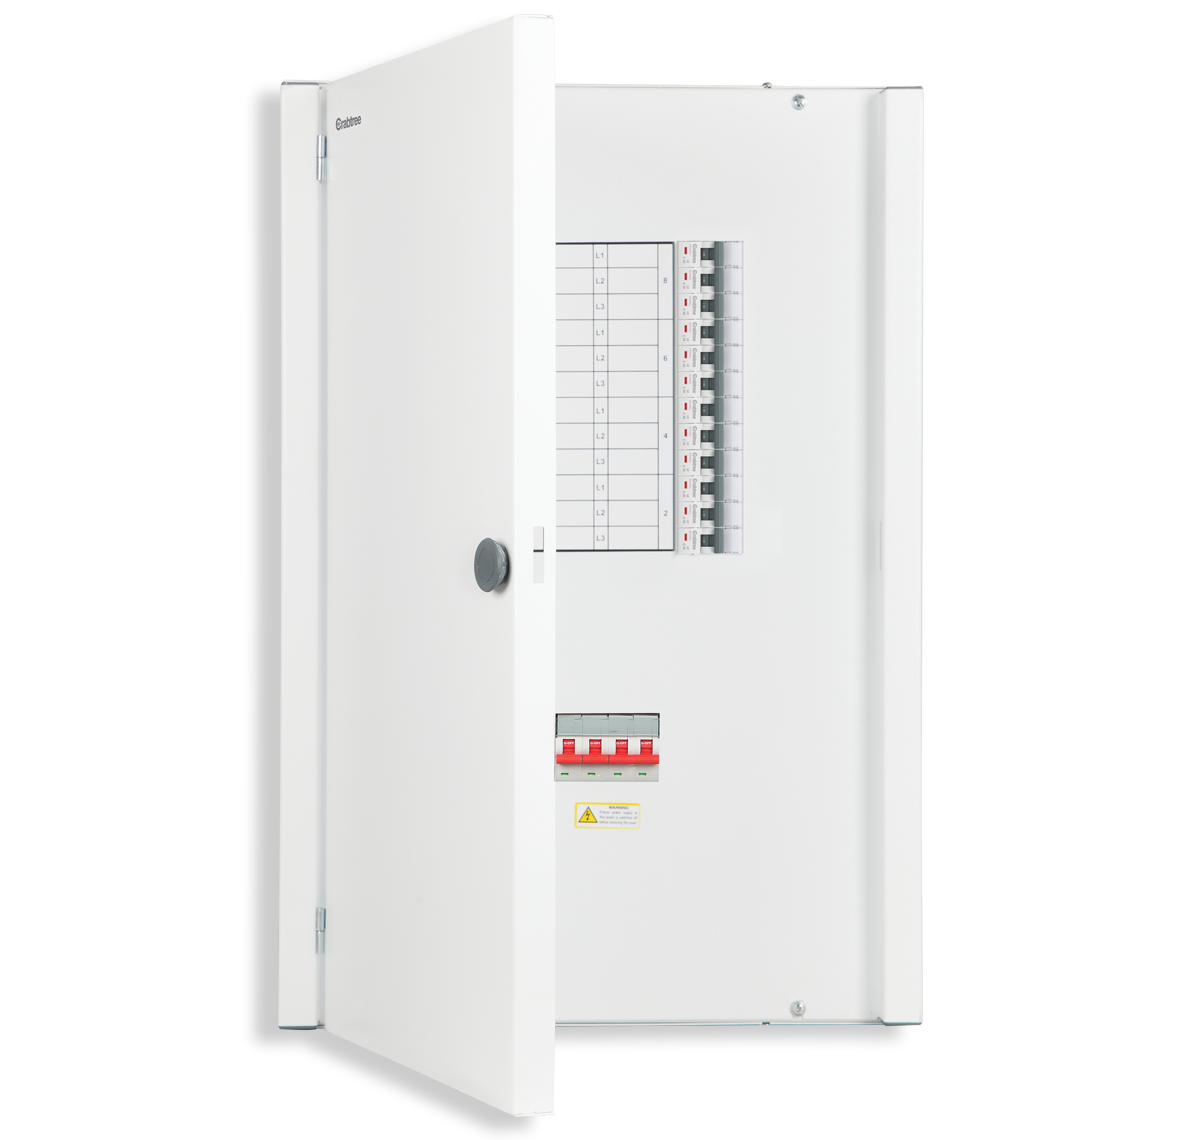 Crabtree - distribution board TPN-MCB 4 WAY